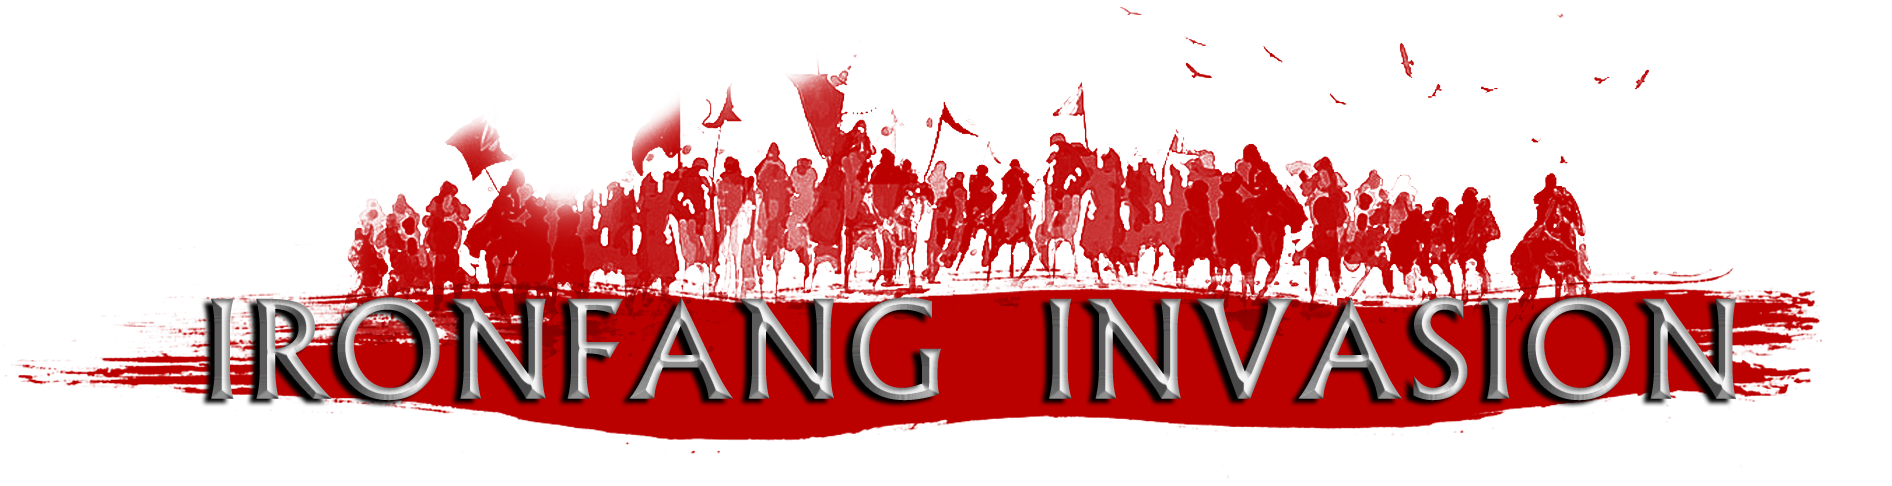 The Ironfang Invasion